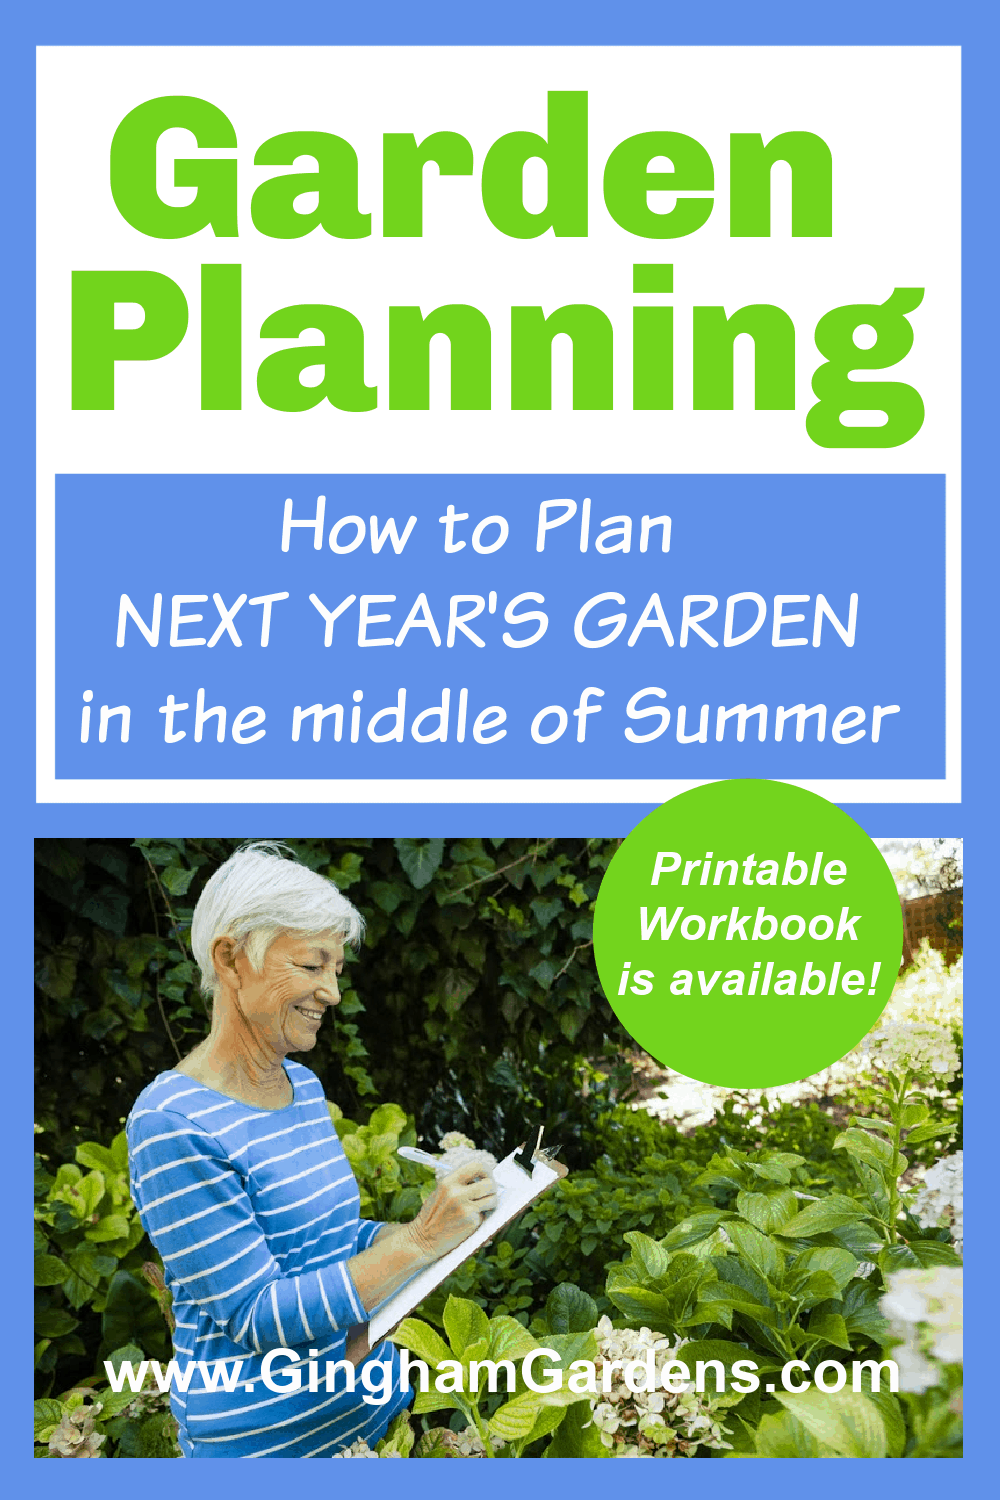 Image of a Gardener with a Clipboard with text overlay - Garden Planning